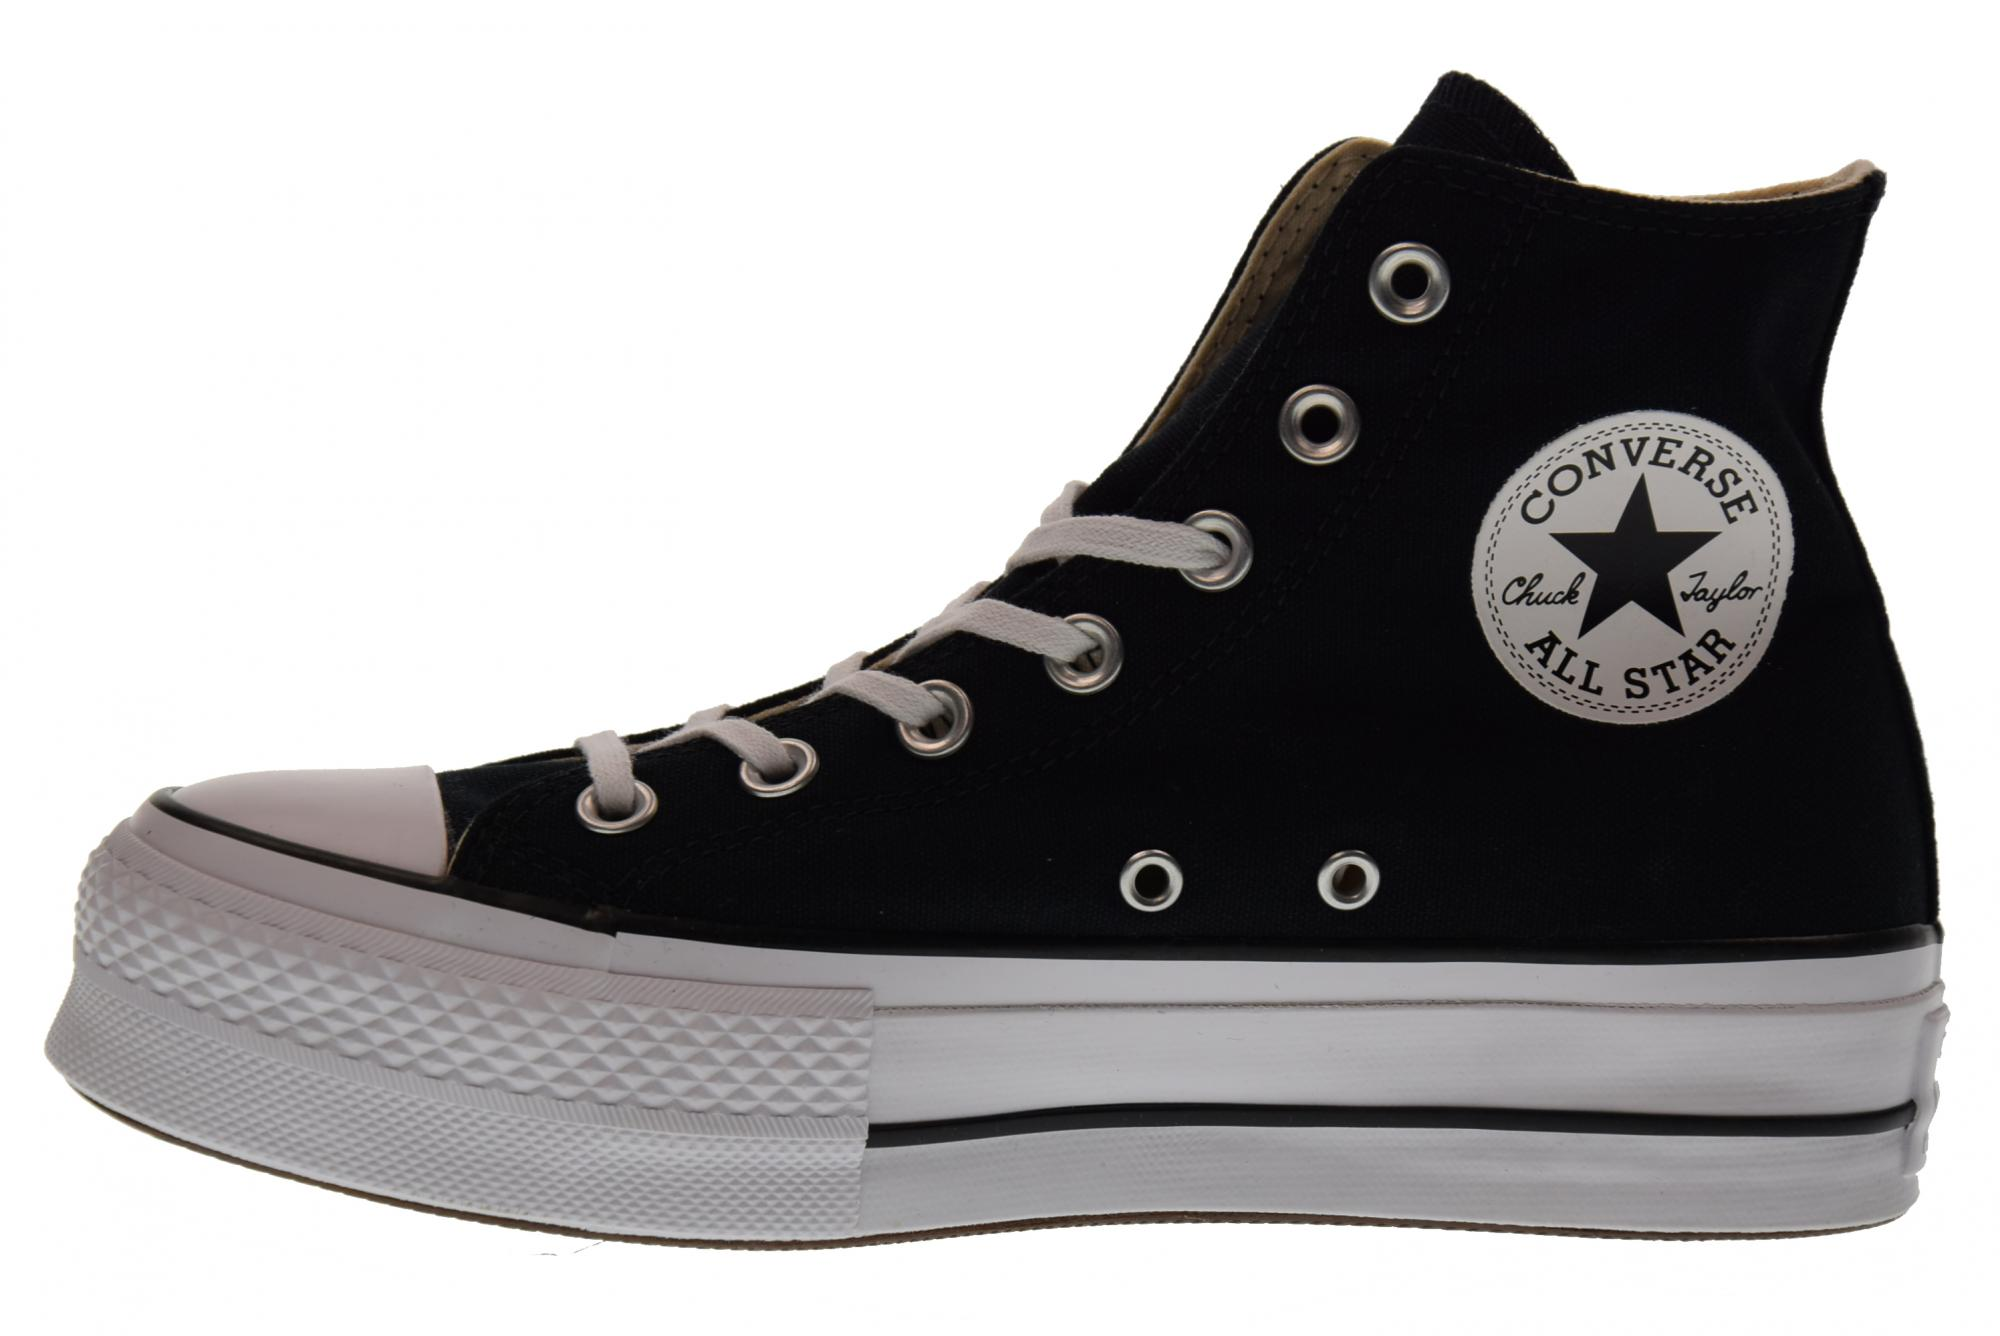 Converse Shoes 560845c Platform Sneakers A18us Woman Lift Ctas High f7bgmY6vIy